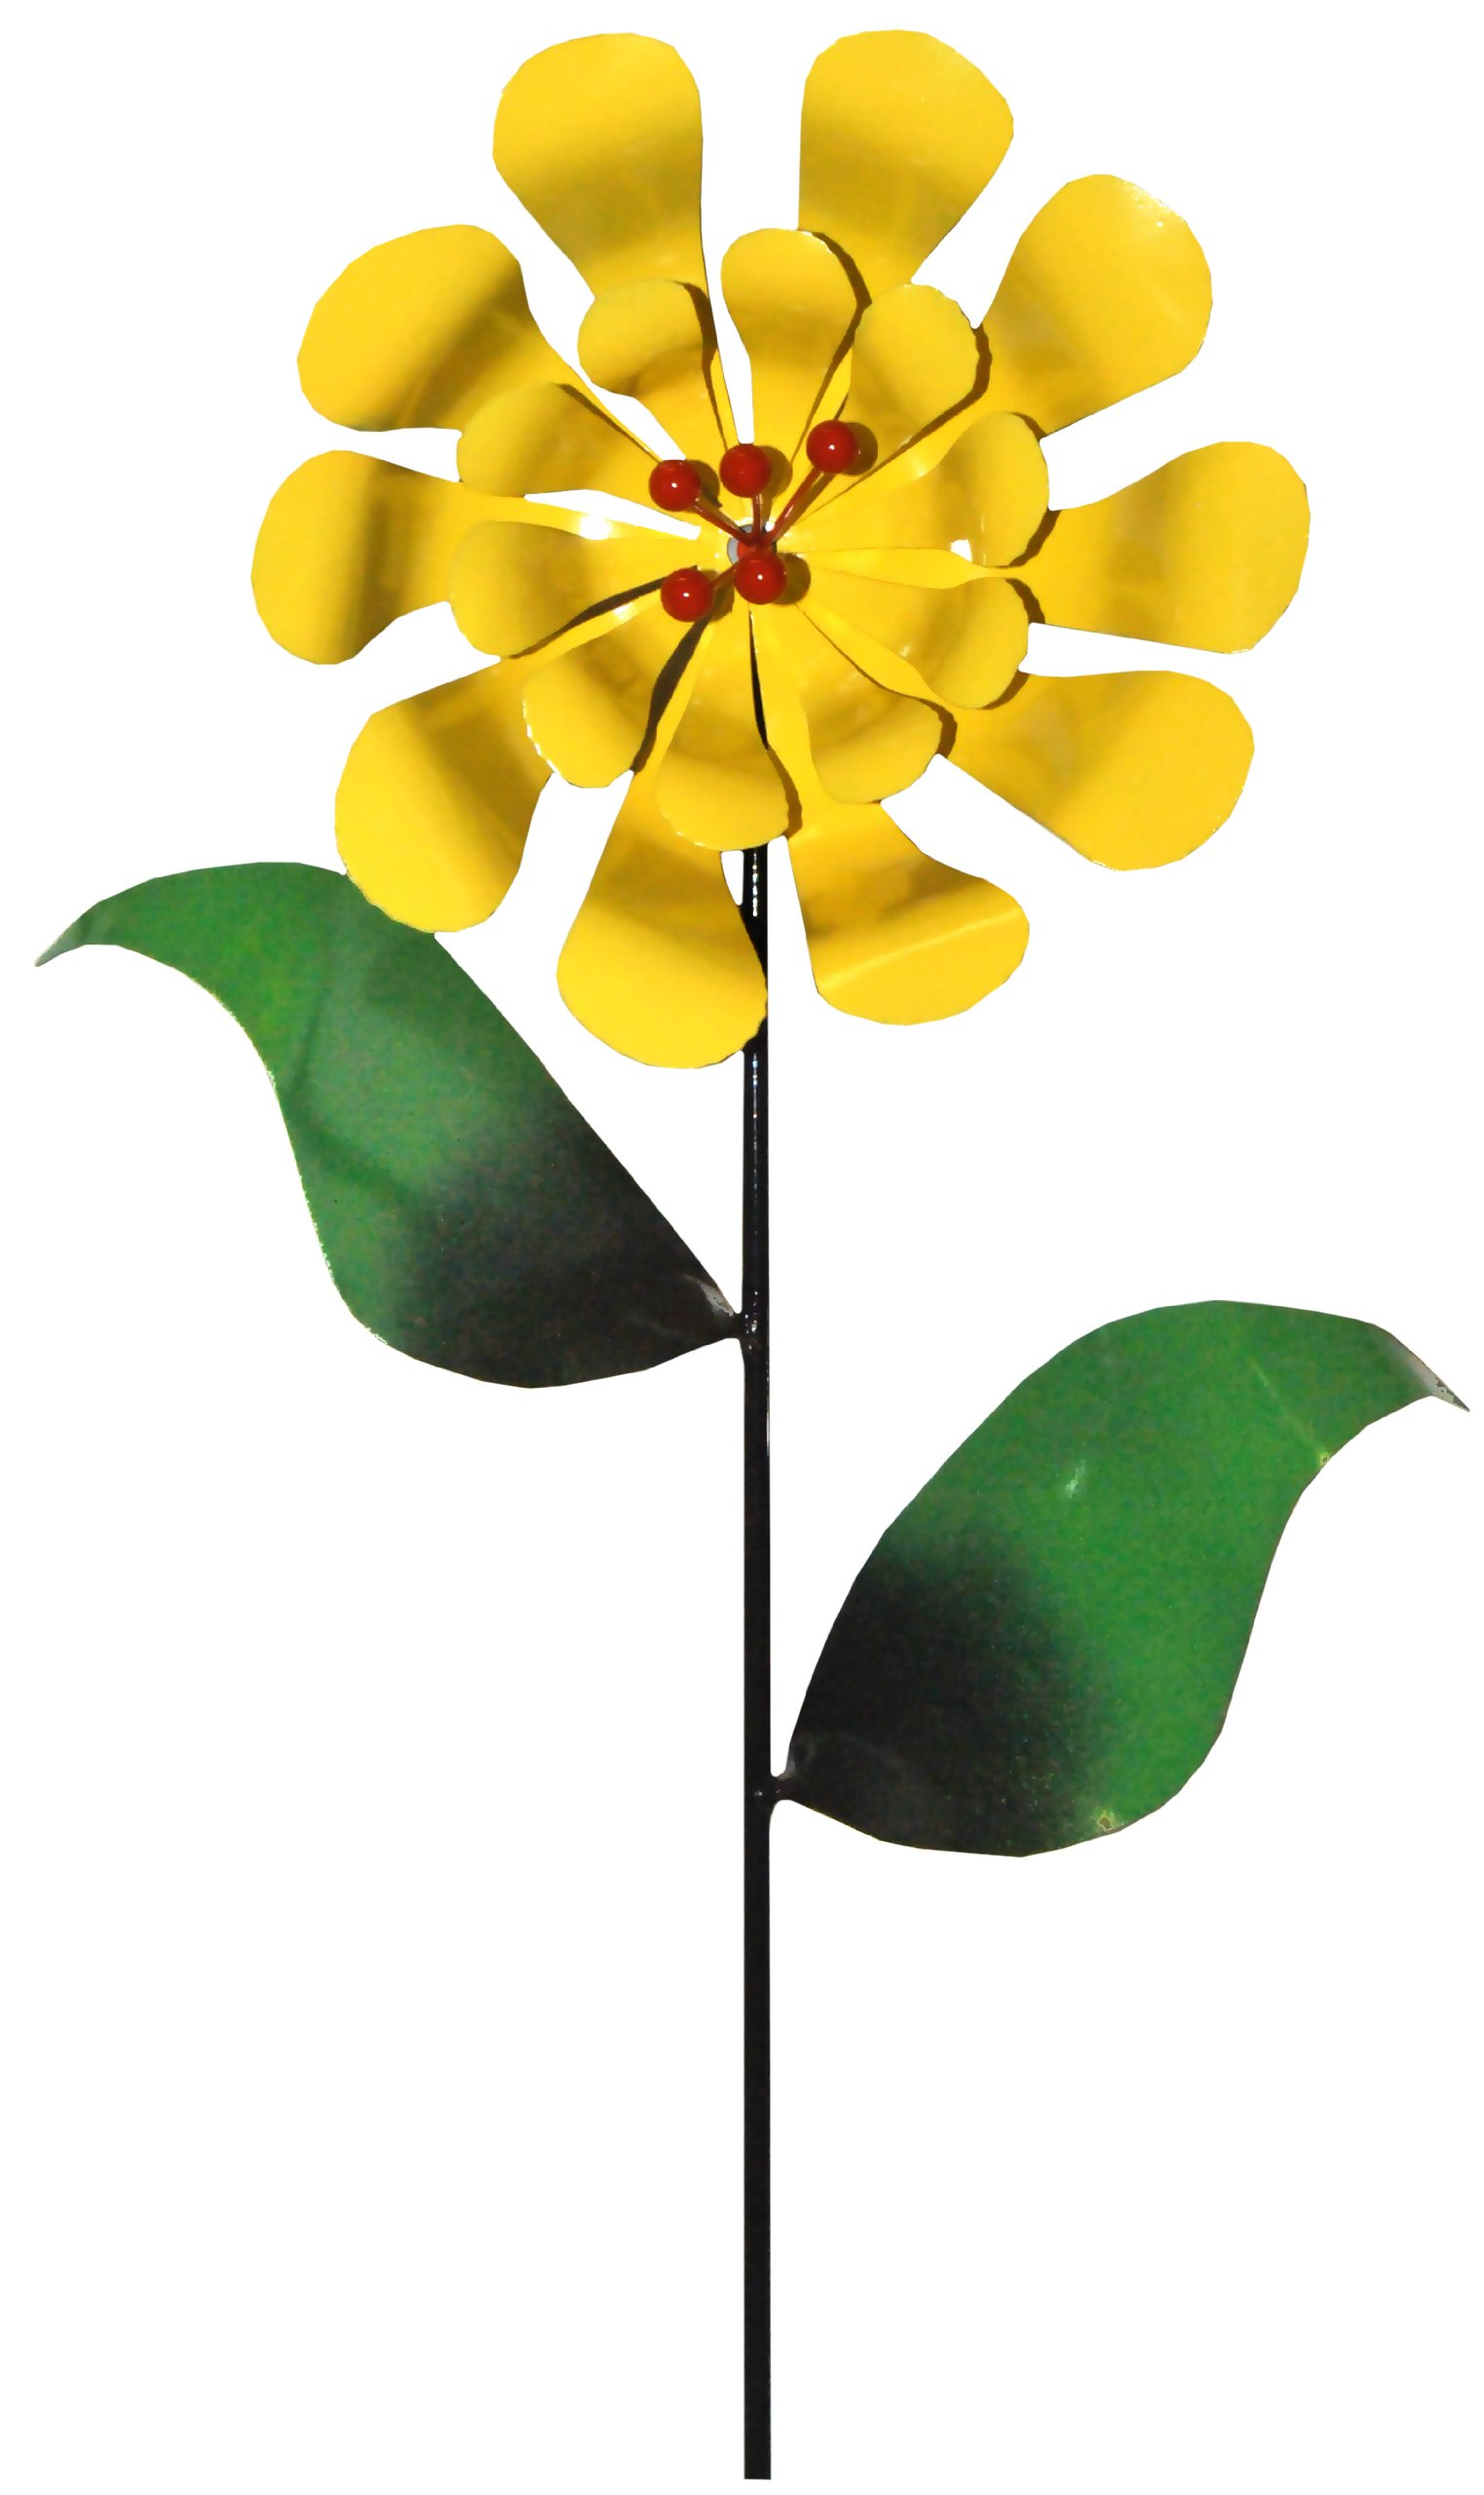 Steven Cooper Metalsmith AFLWR-07-L Artificial Garden Flower on Footed Stake, 5-Feet, Yellow by Steven Cooper Metalsmith